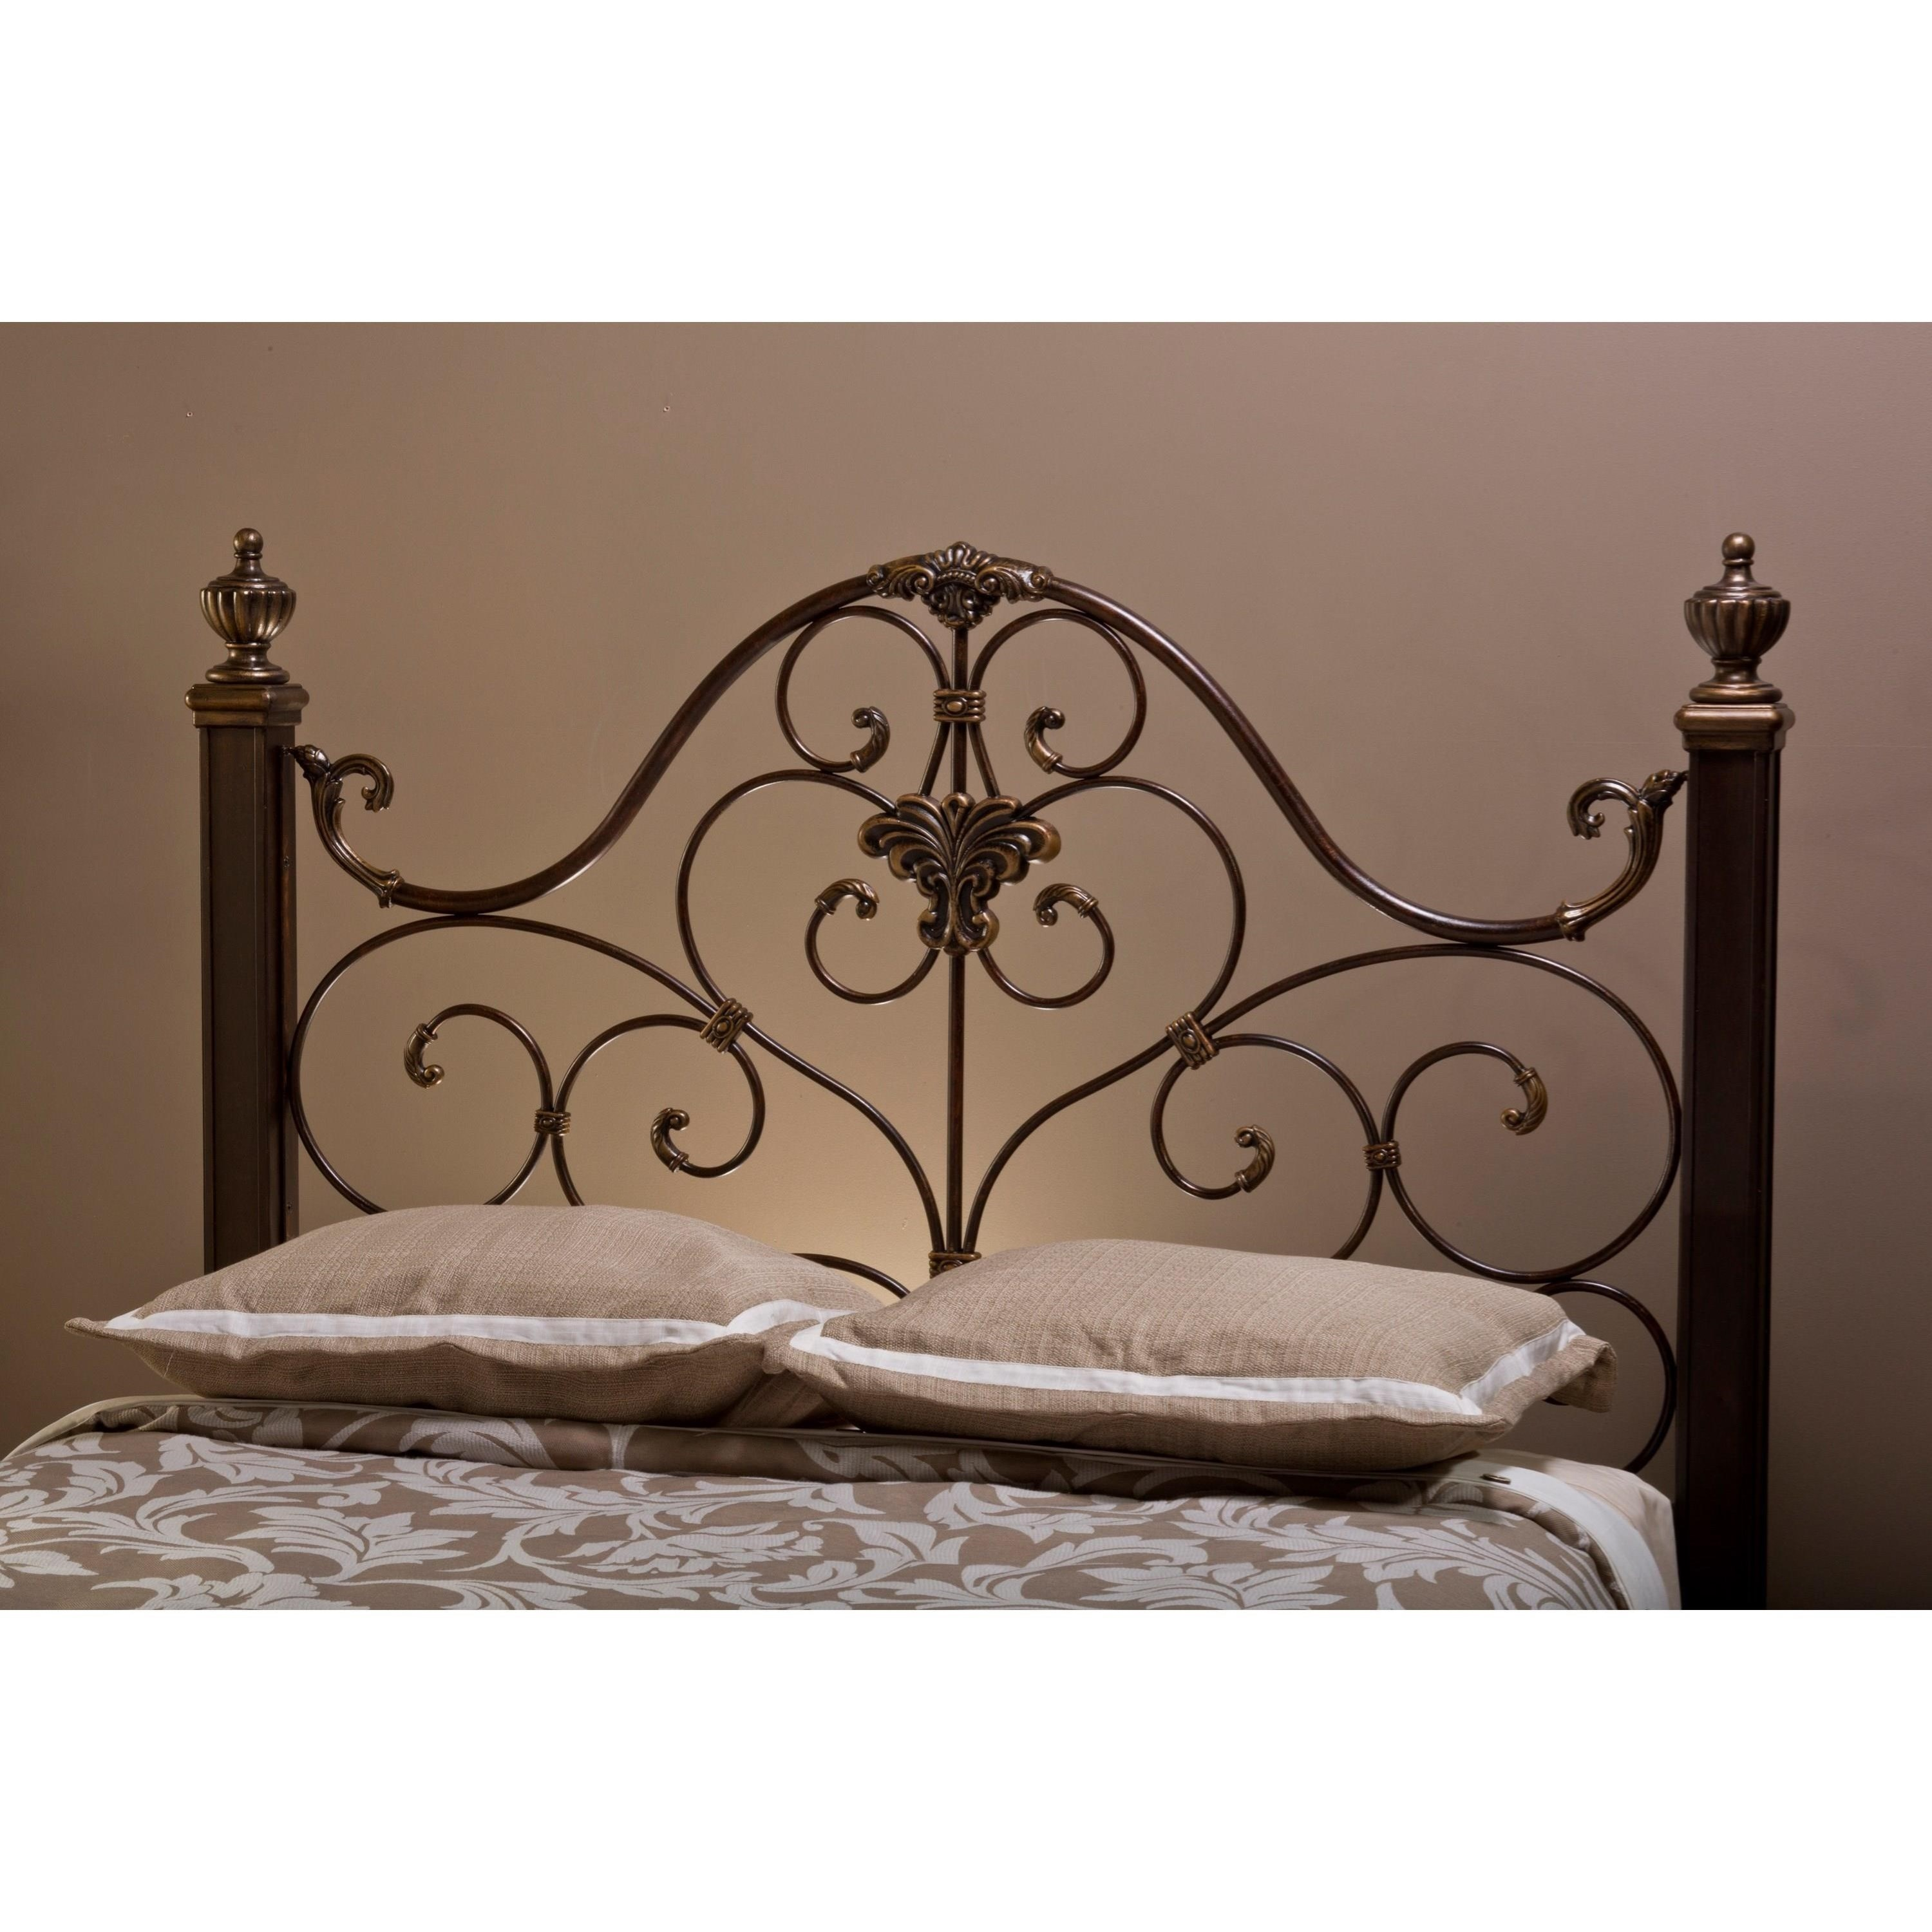 Hillsdale Metal Beds King Headboard with Rails - Item Number: 1648HKR